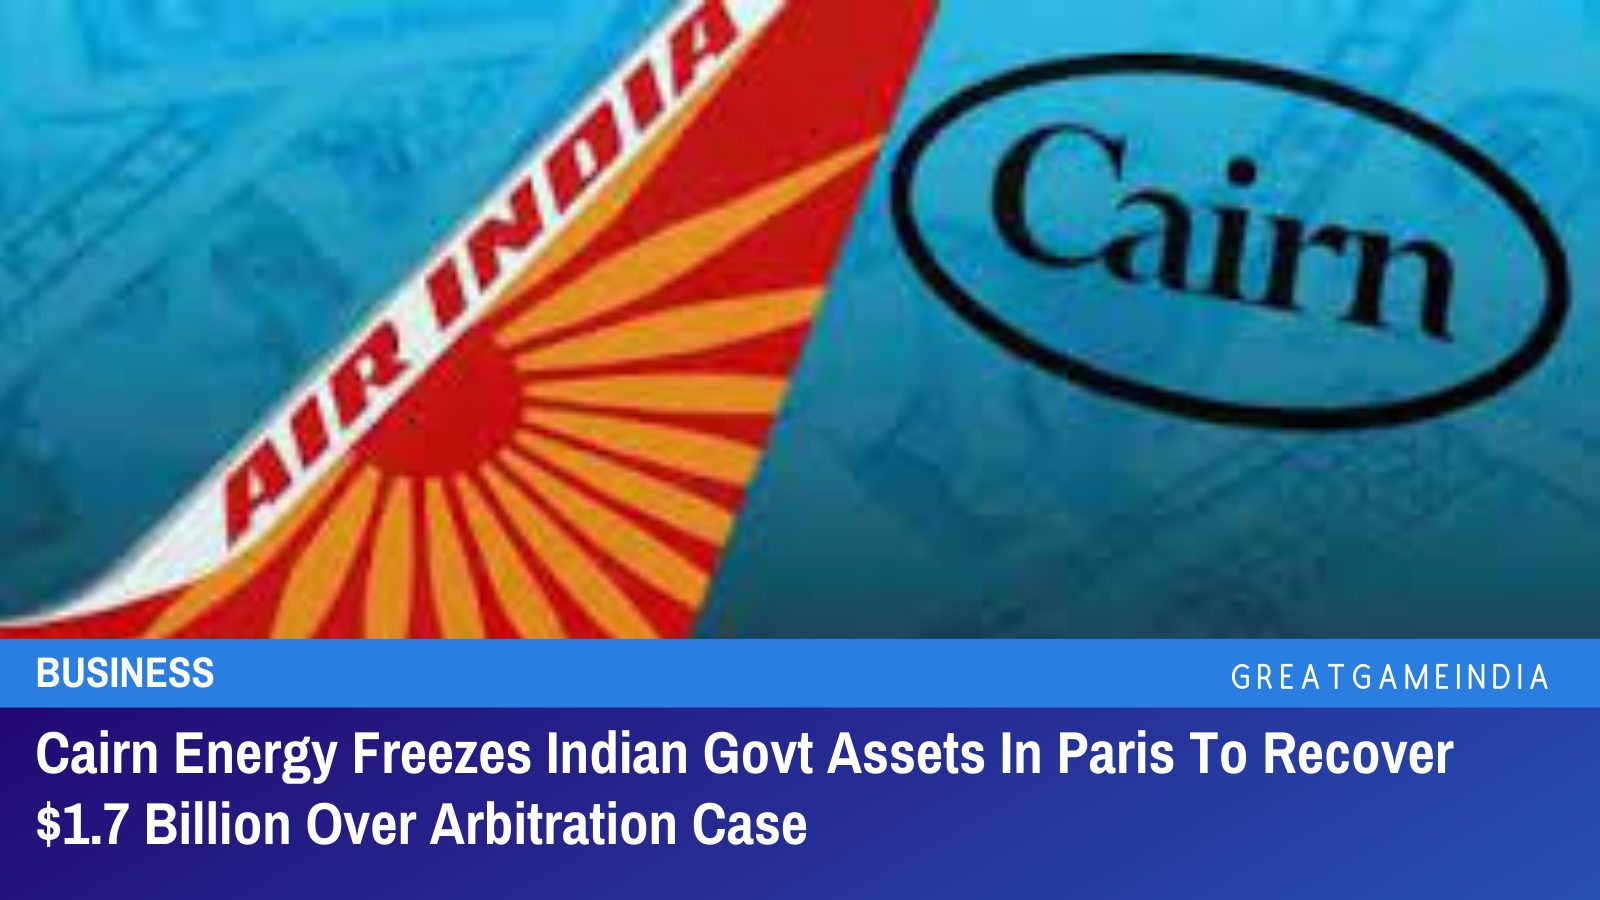 Cairn Energy Seizes 20 Indian Govt Assets In Paris To Recover $1.7 Billion Over Arbitration Case